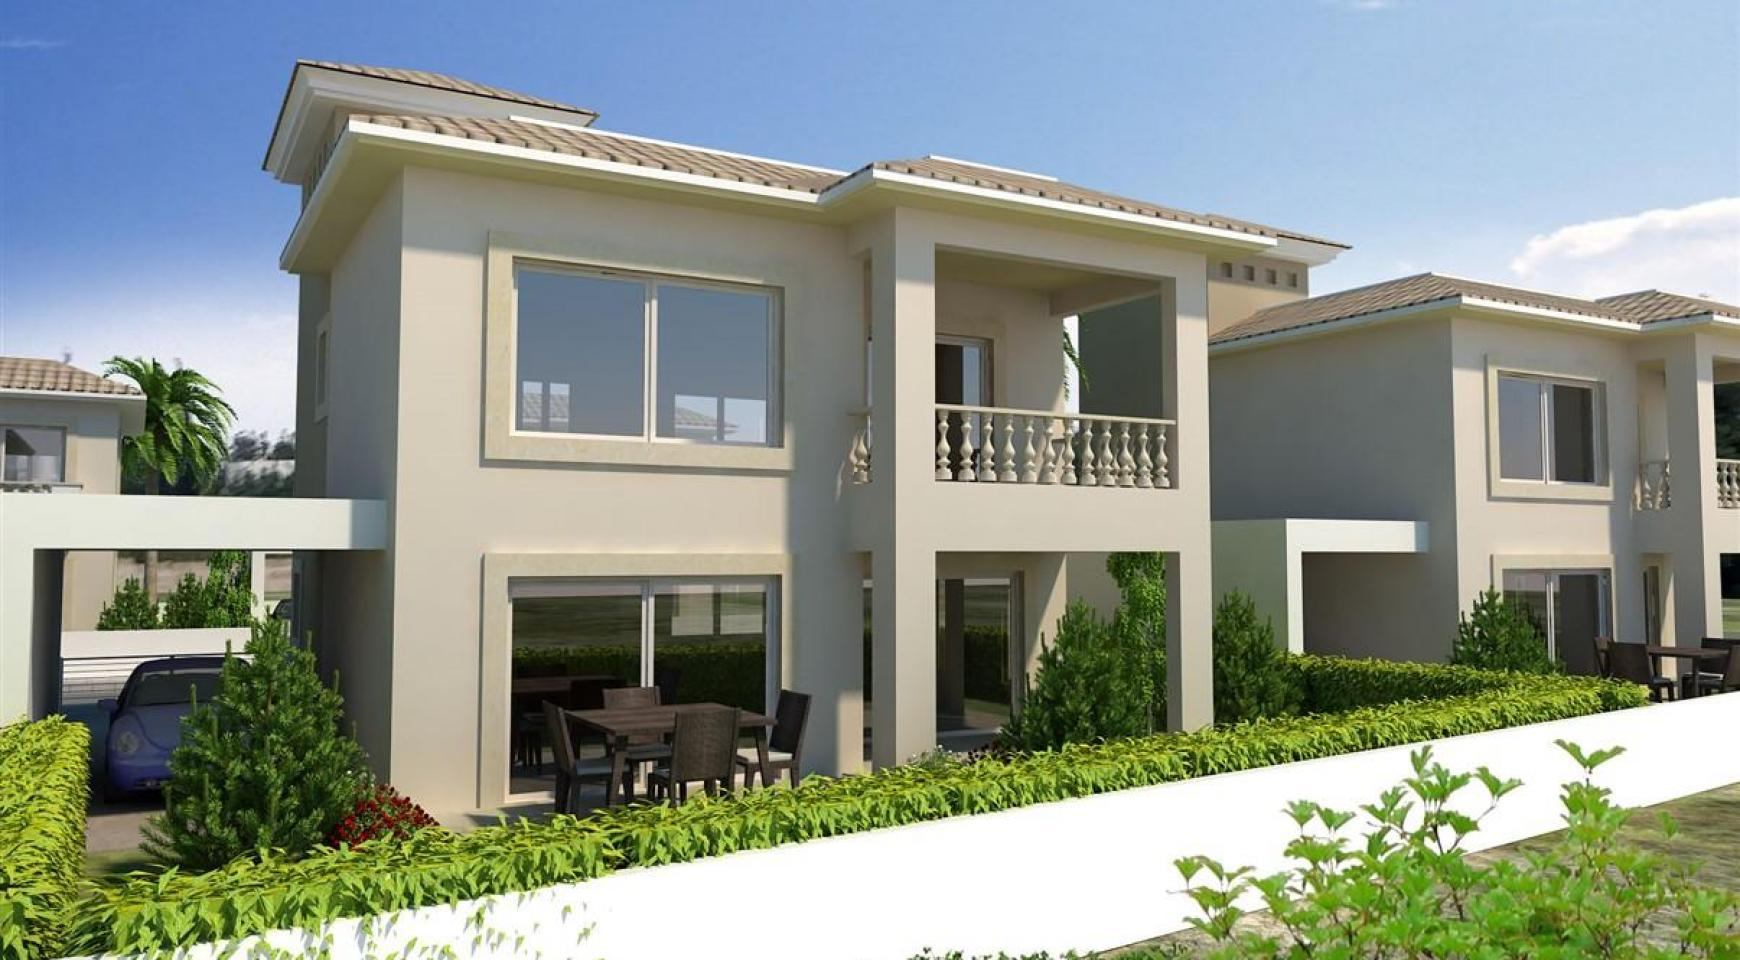 3 Bedroom Villa in a New Project - 18